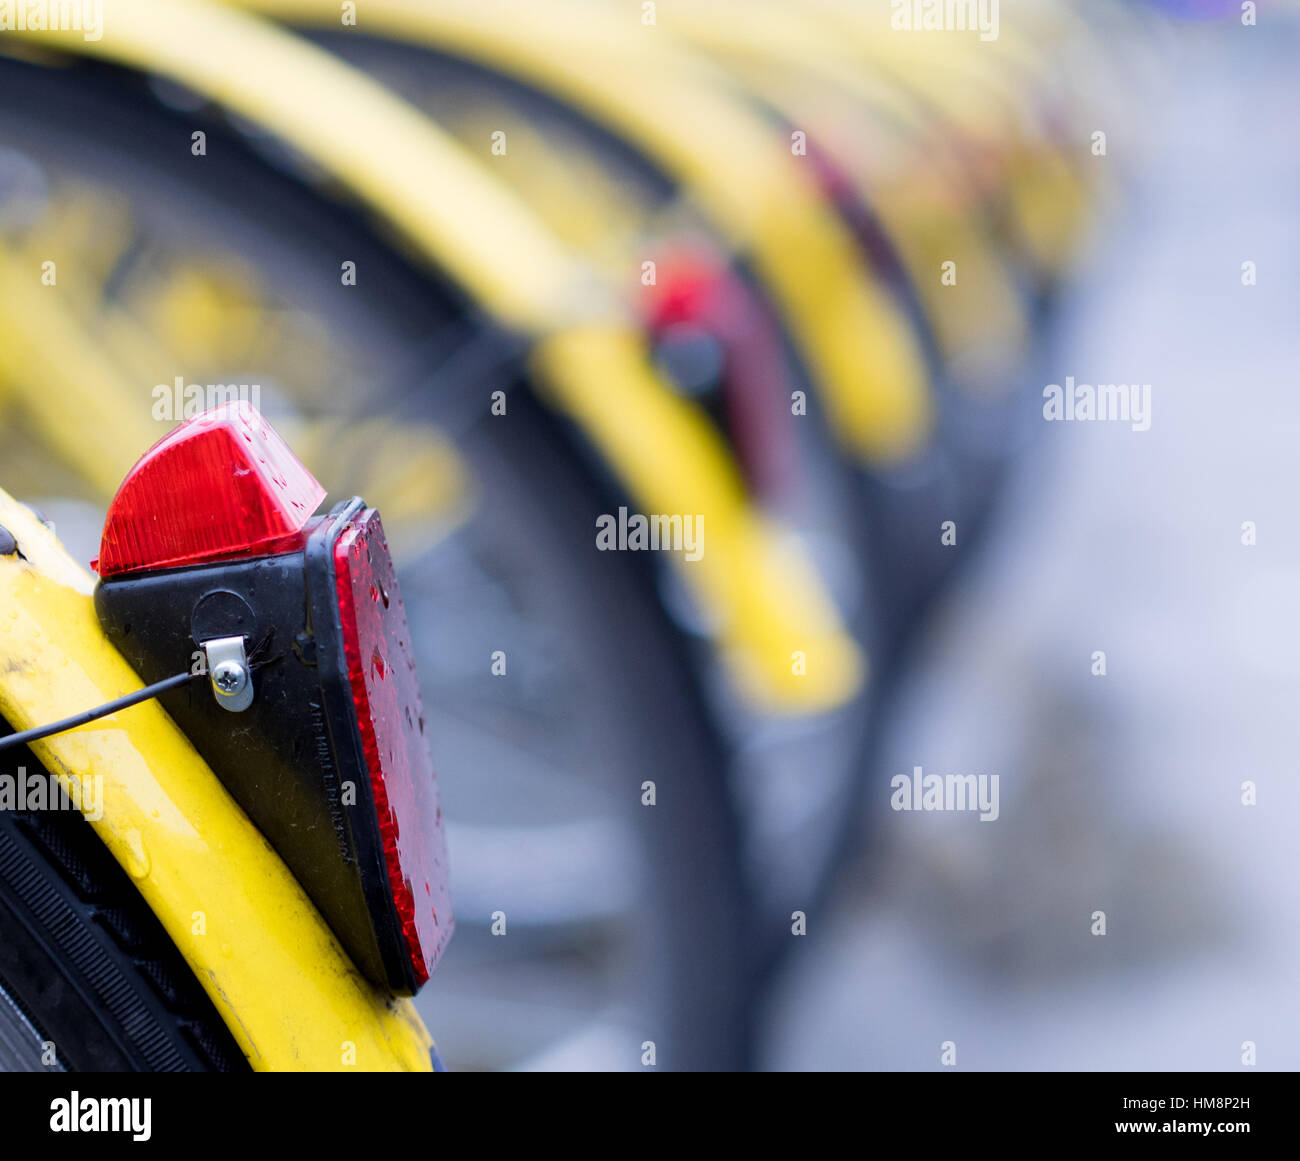 bike sharing in the city - Stock Image